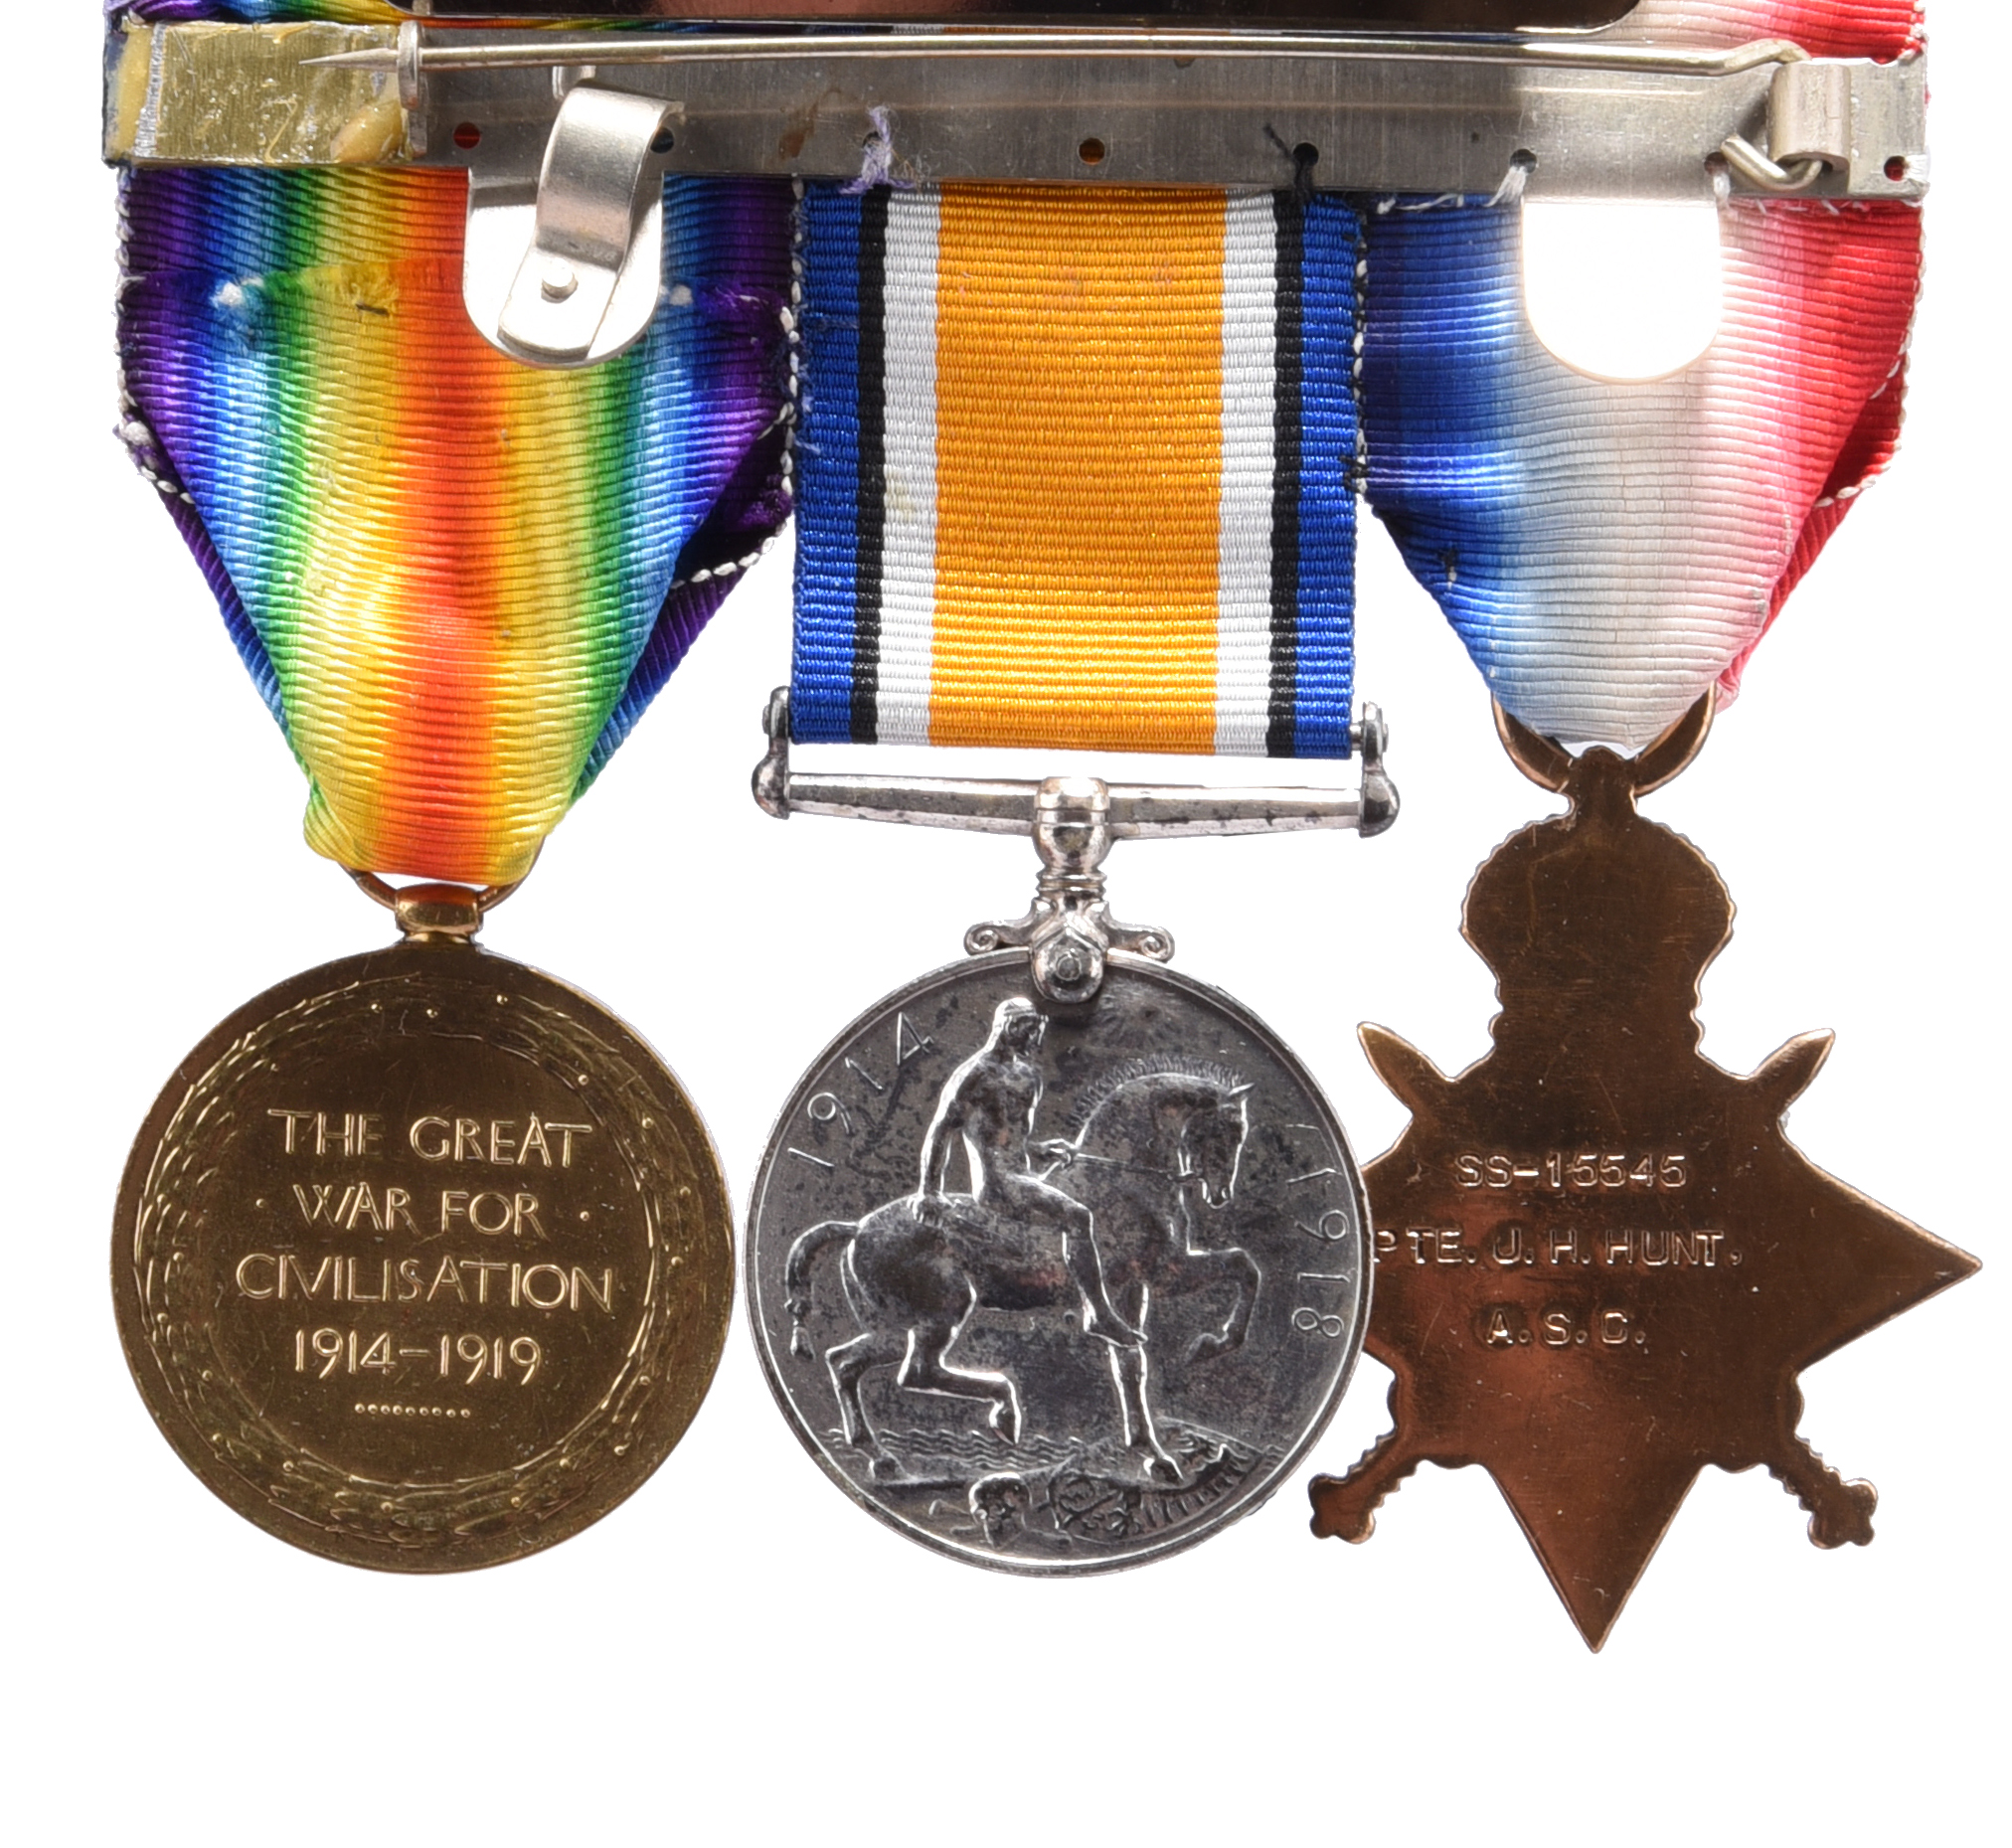 A Great War casualty Mercantile Marine War Medal to Frank Axel Rodman, S S Mordenwood (Frank A. - Image 2 of 3